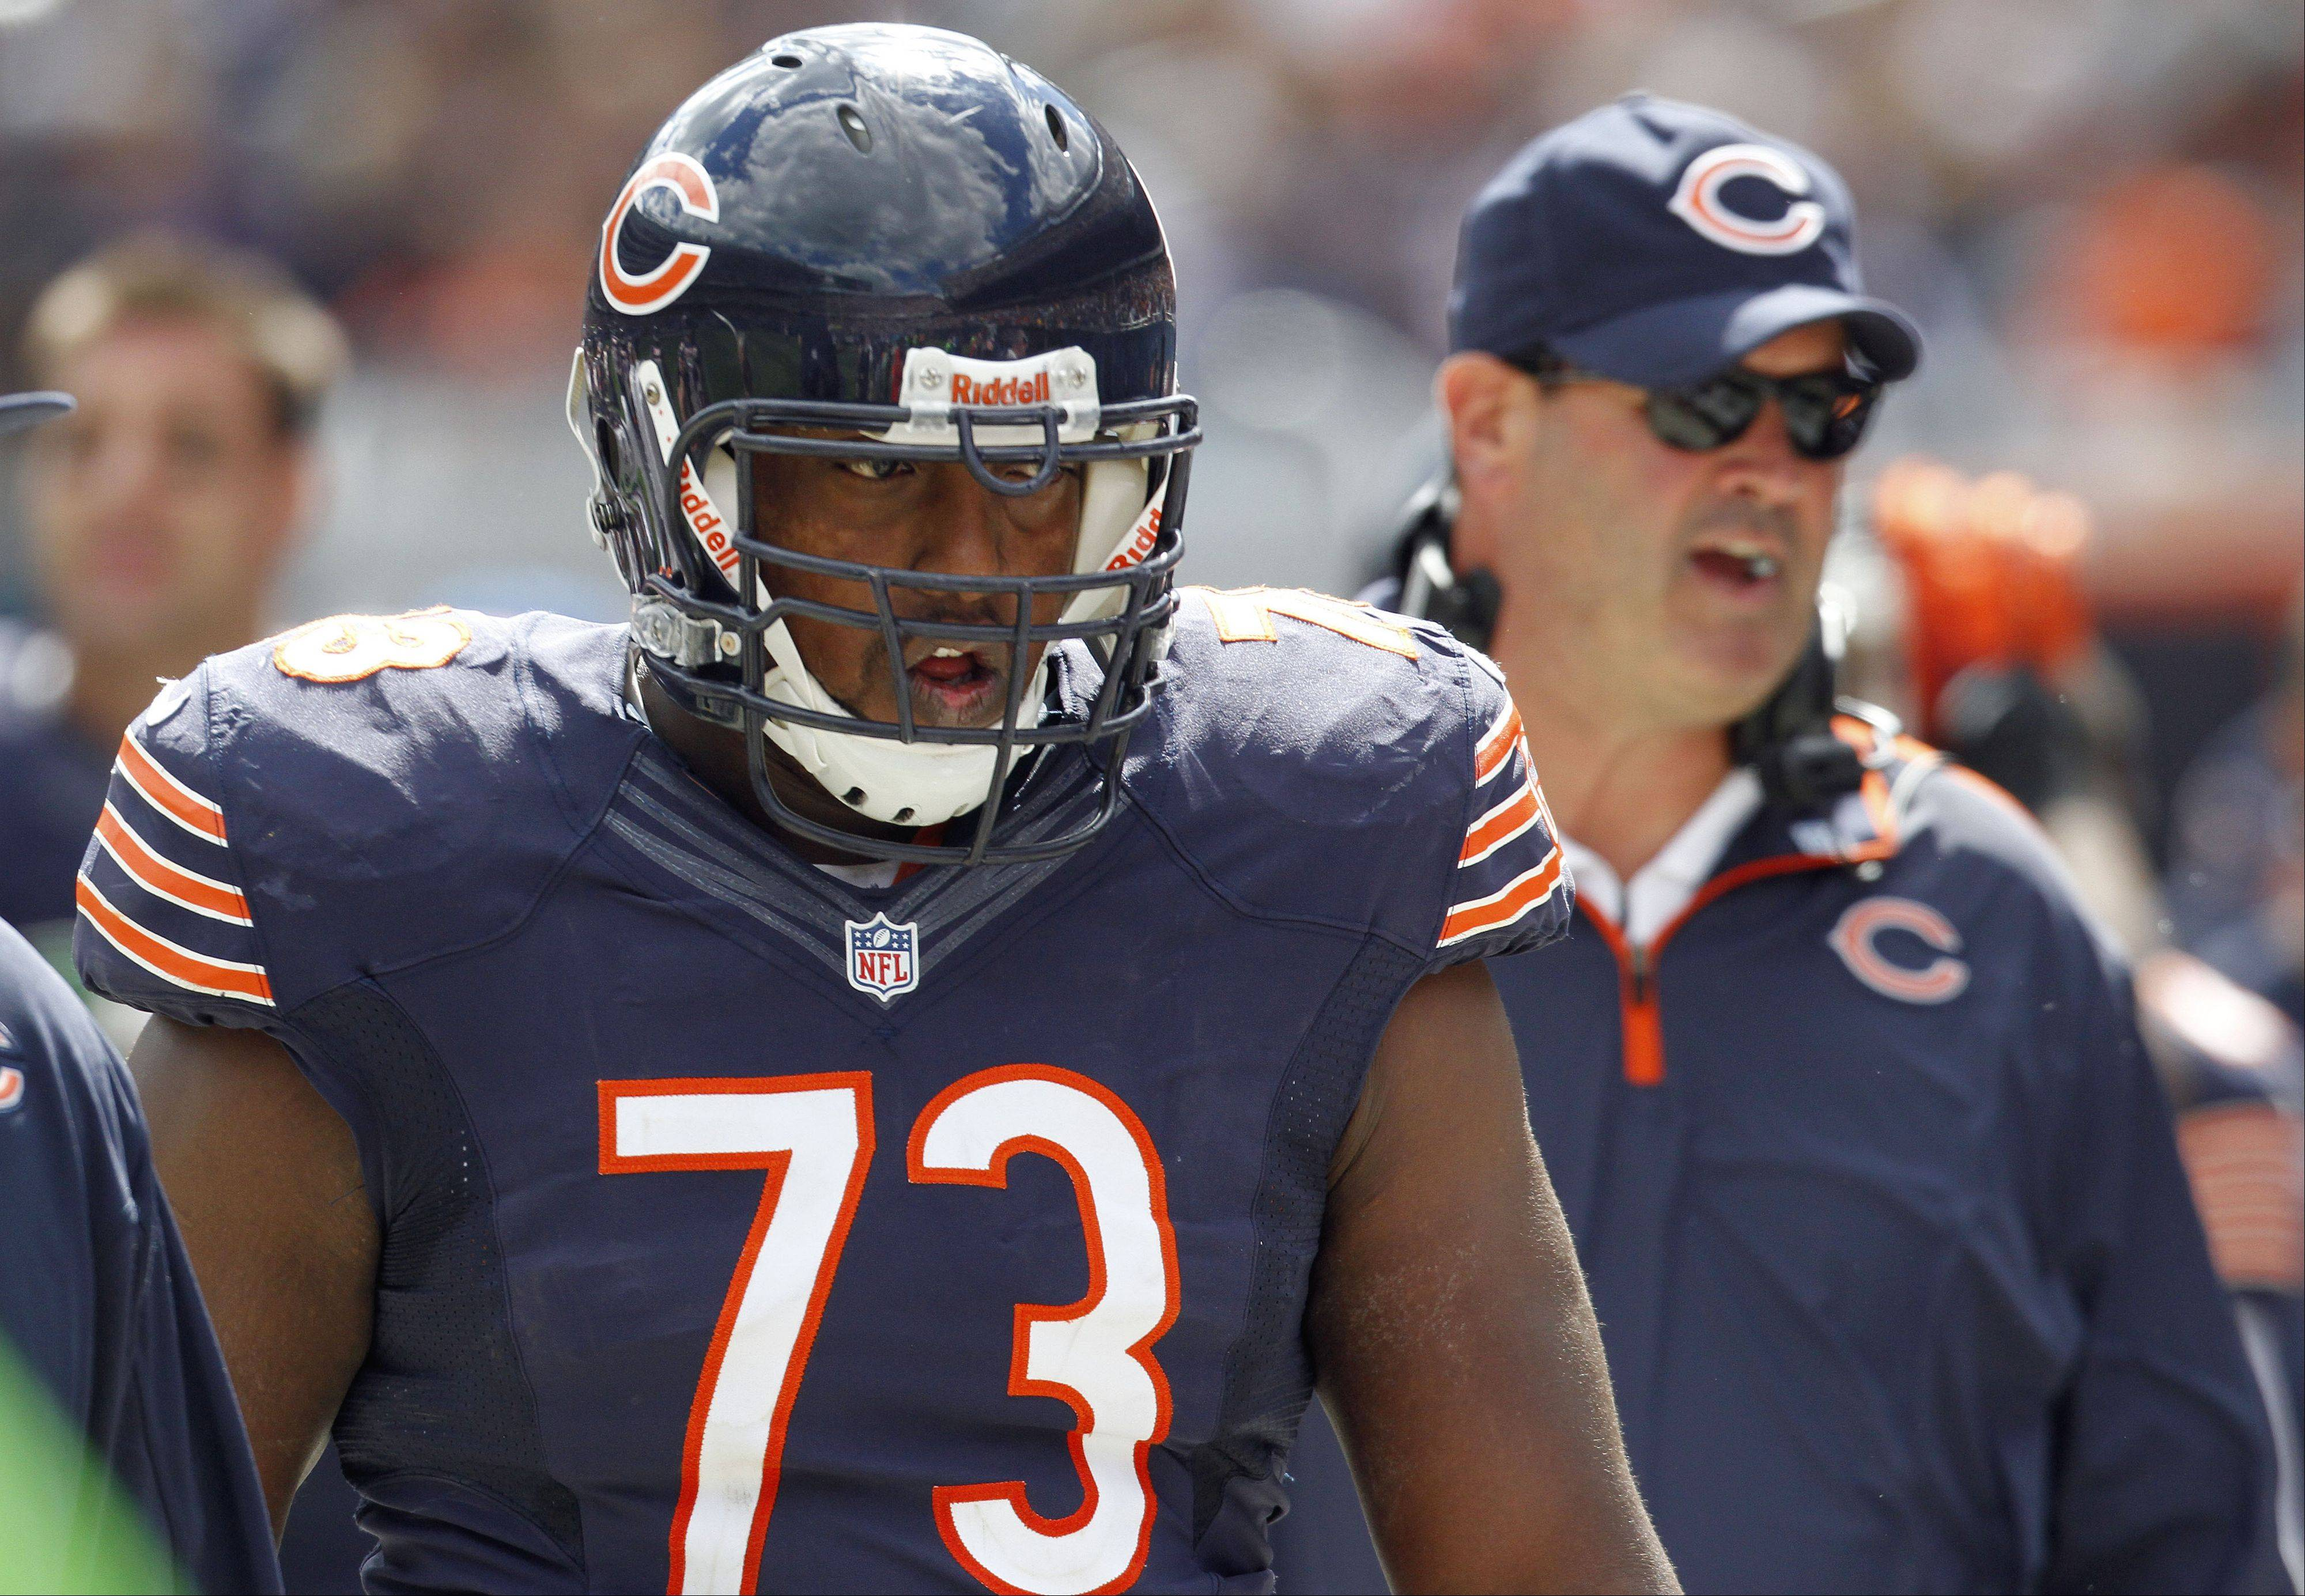 Steve Lundy/slundy@dailyherald.com ¬ Chicago Bears tackle J'Marcus Webb walks to the bench with offensive coordinator Mike Tice following during the Bears 23-6 win over the St. Louis Rams Sunday at Soldier Field in Chicago.